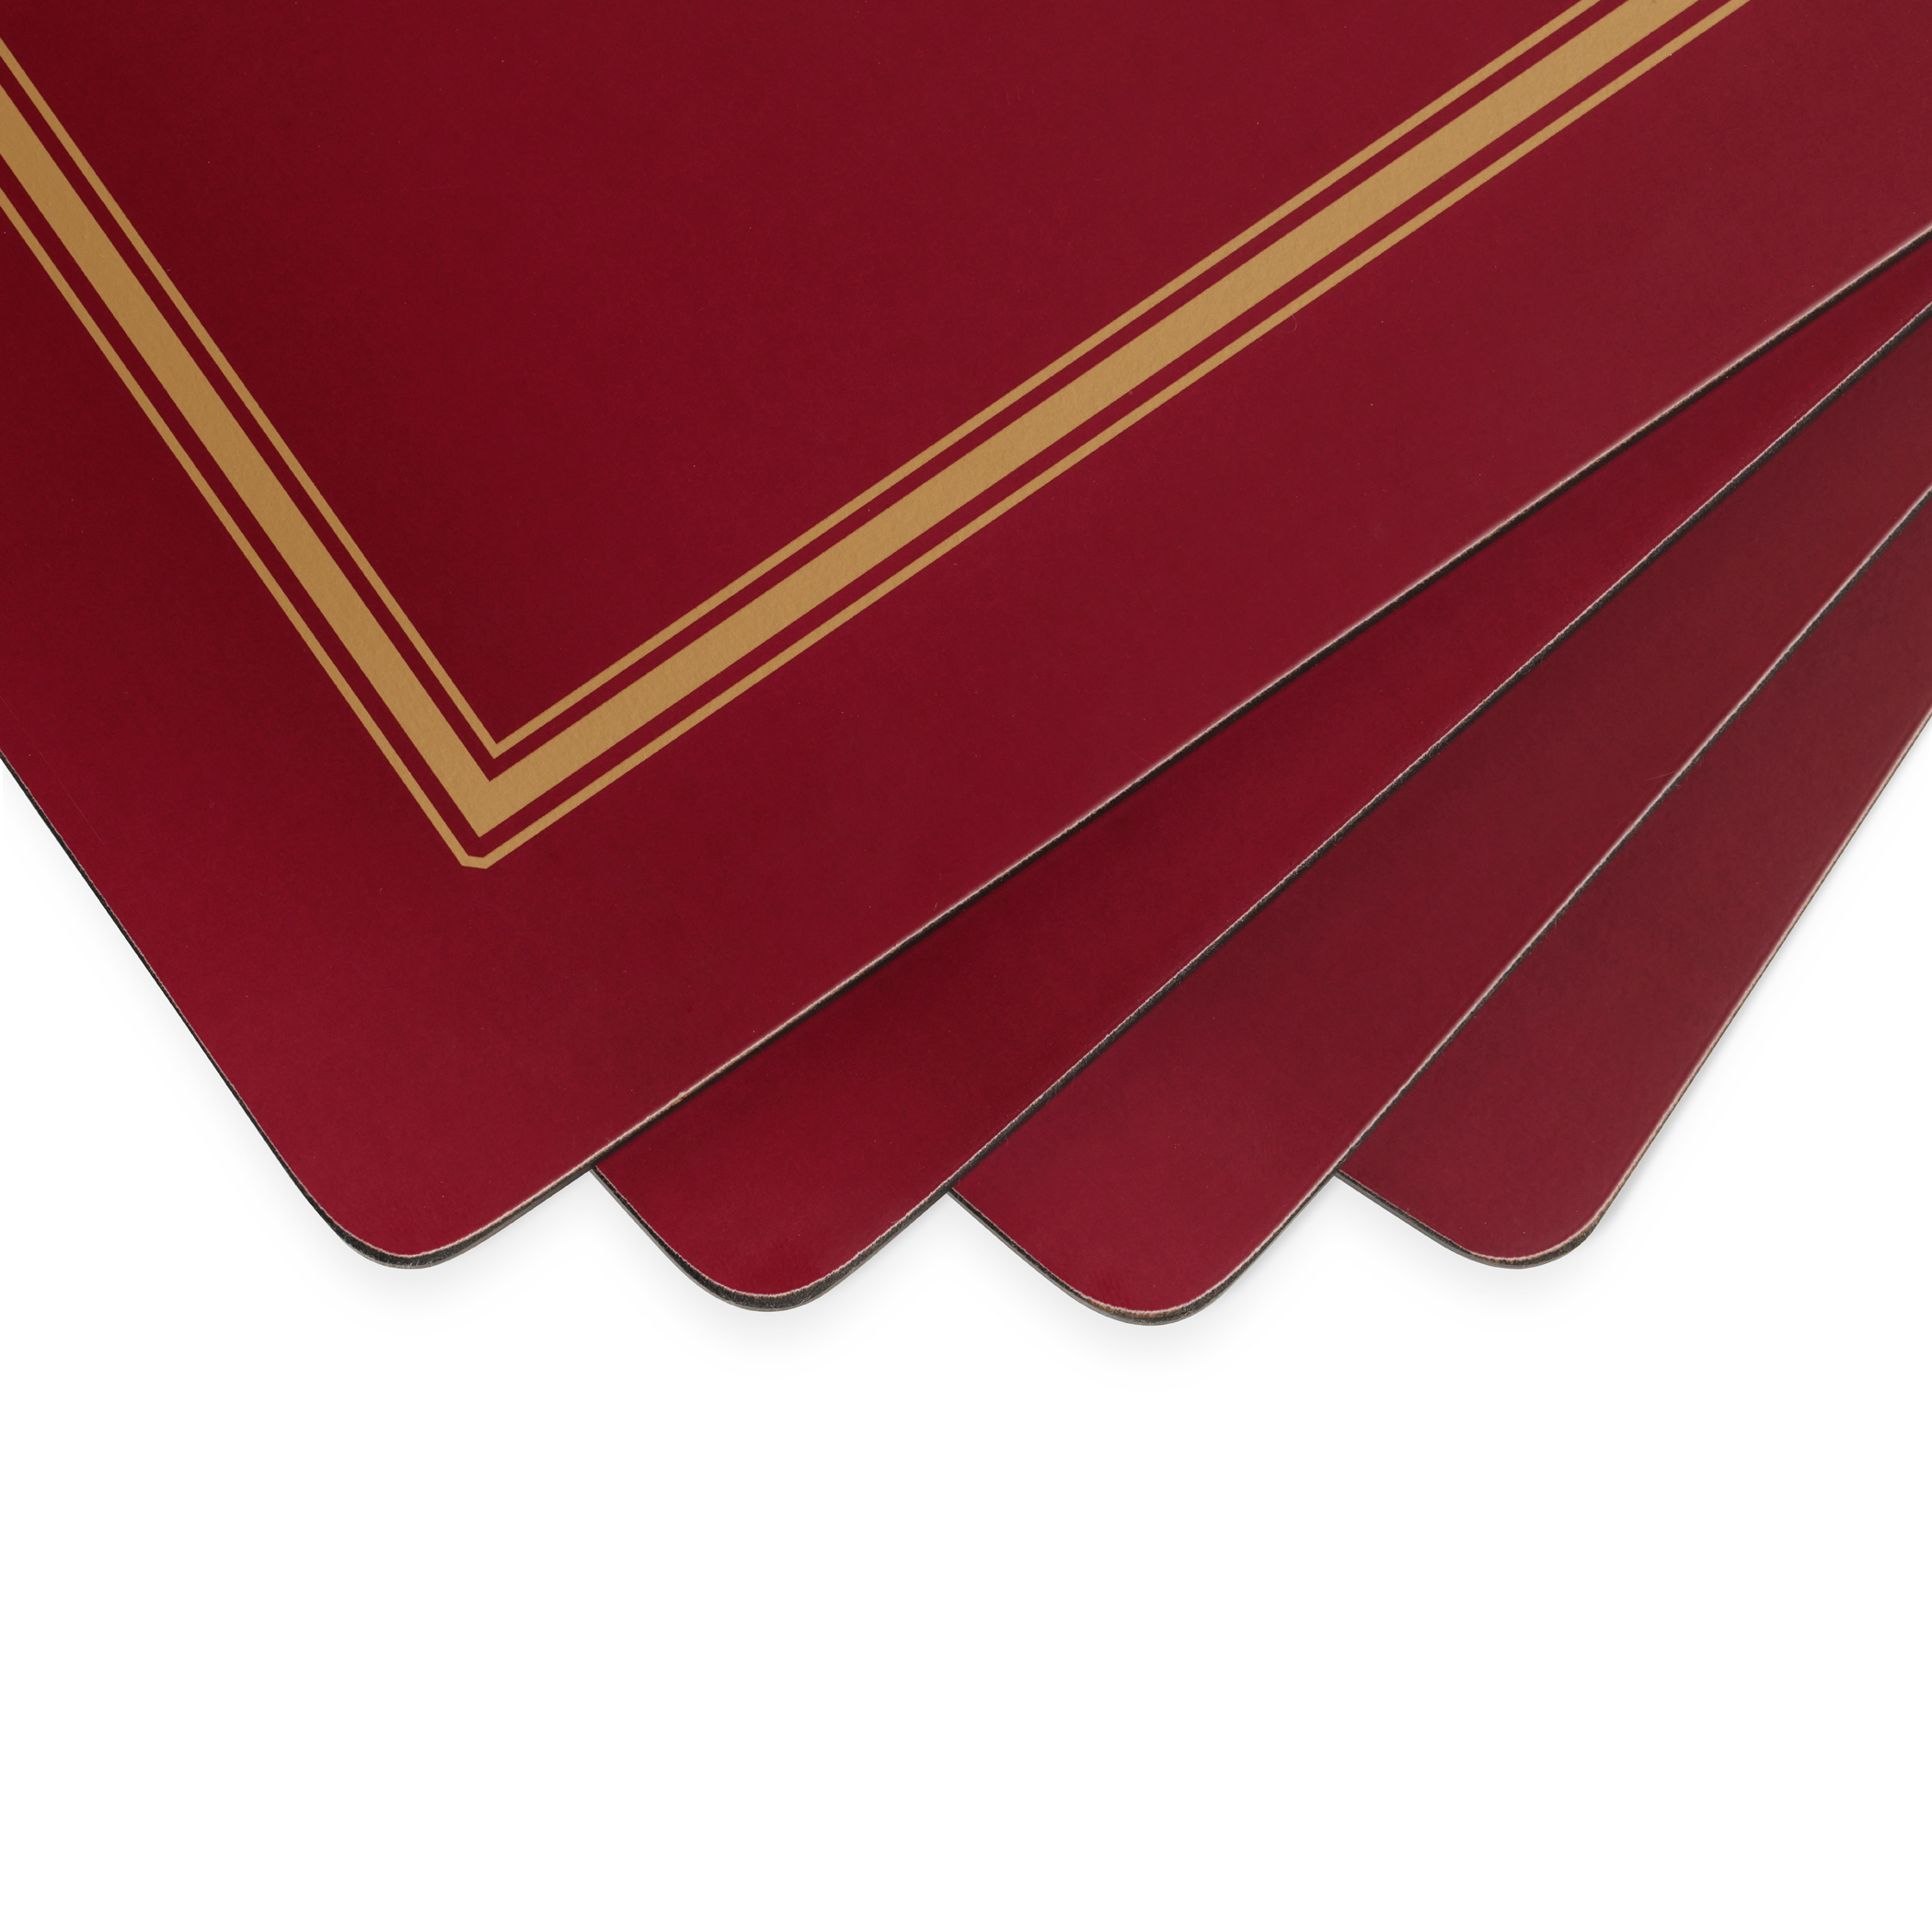 Pimpernel Classic Burgundy Placemats Set of 4 image number 1